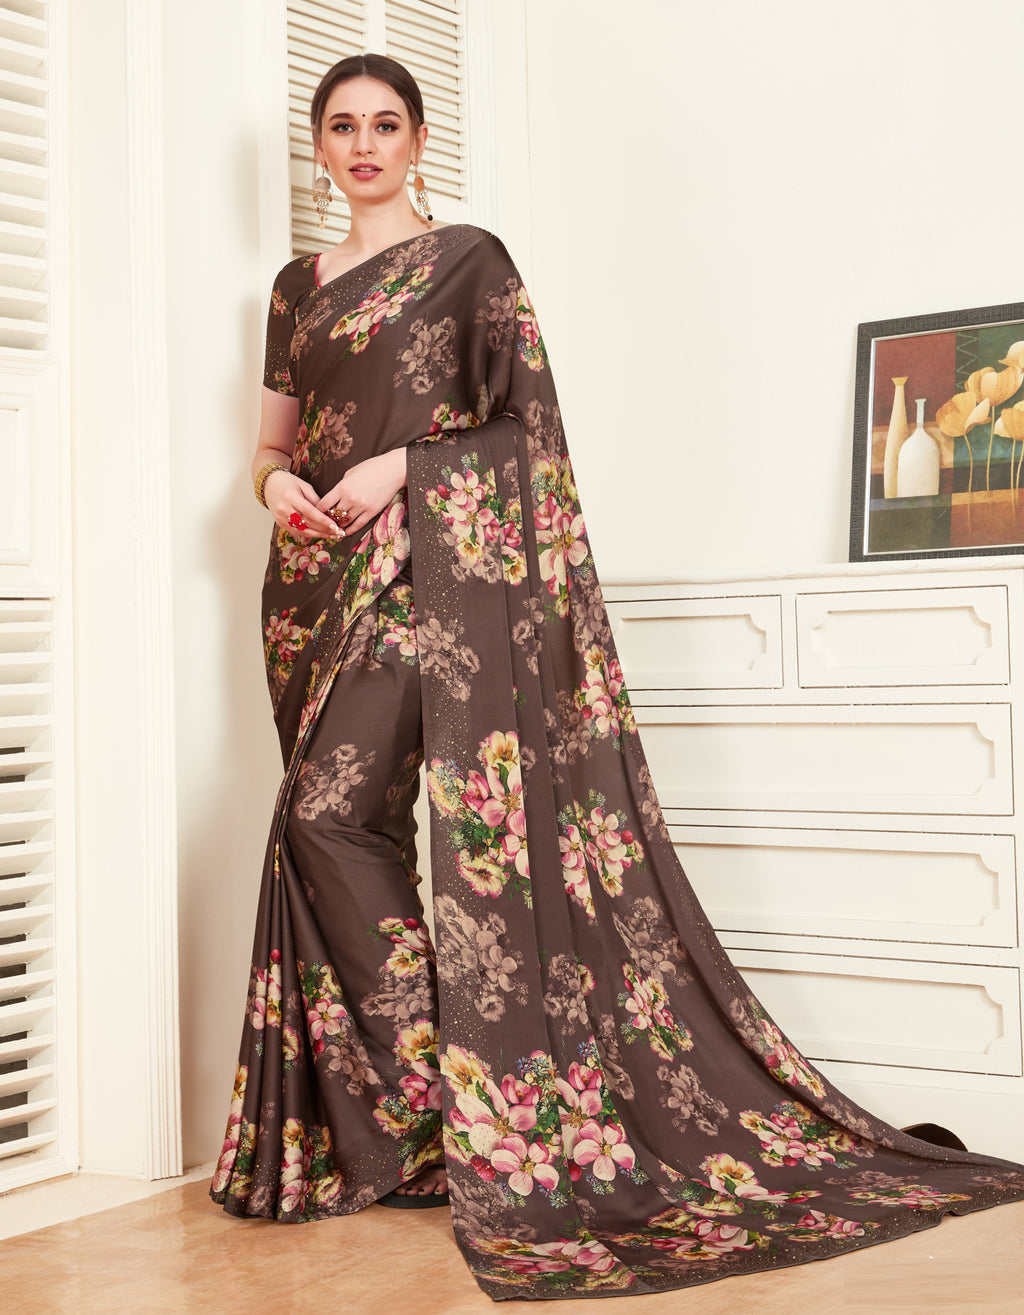 Burgandy Color Crepe Silk Printed Office Party Sarees NYF-6139